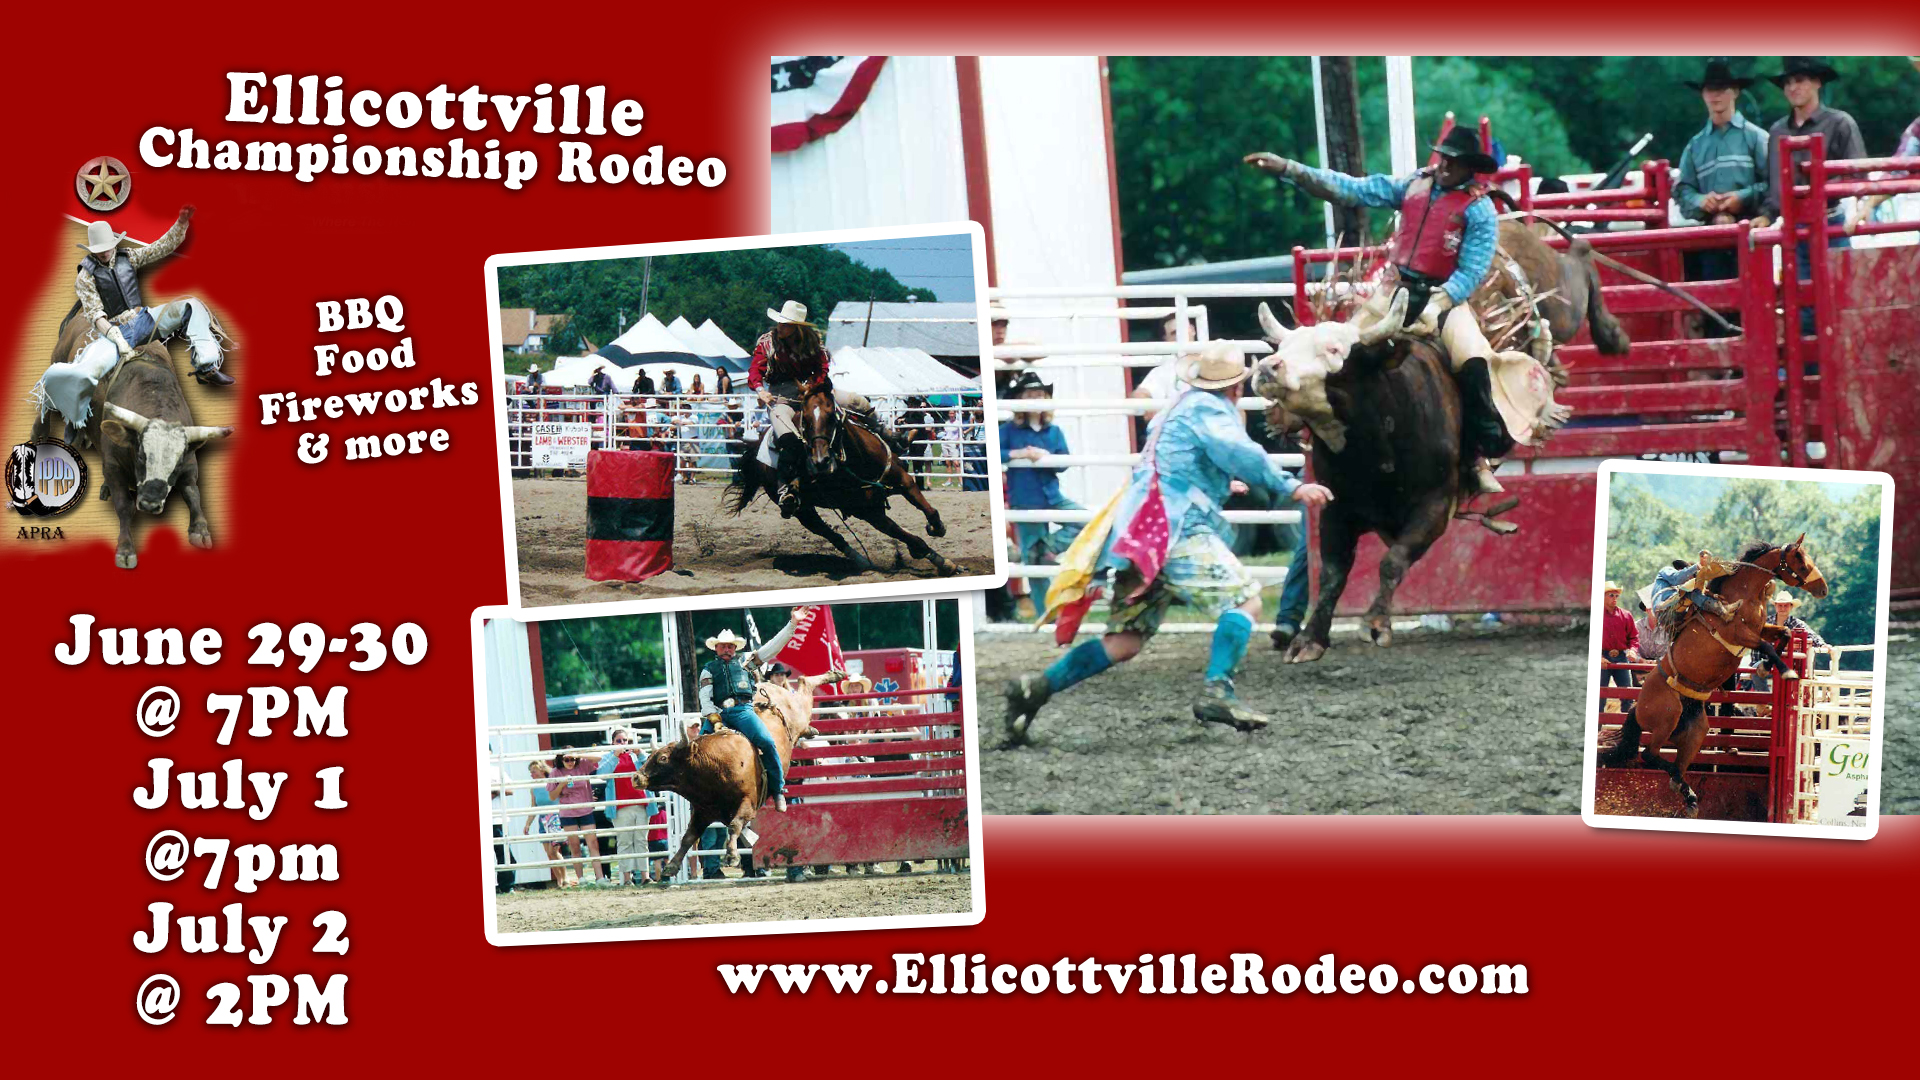 Ellicottville Rodeo 2017